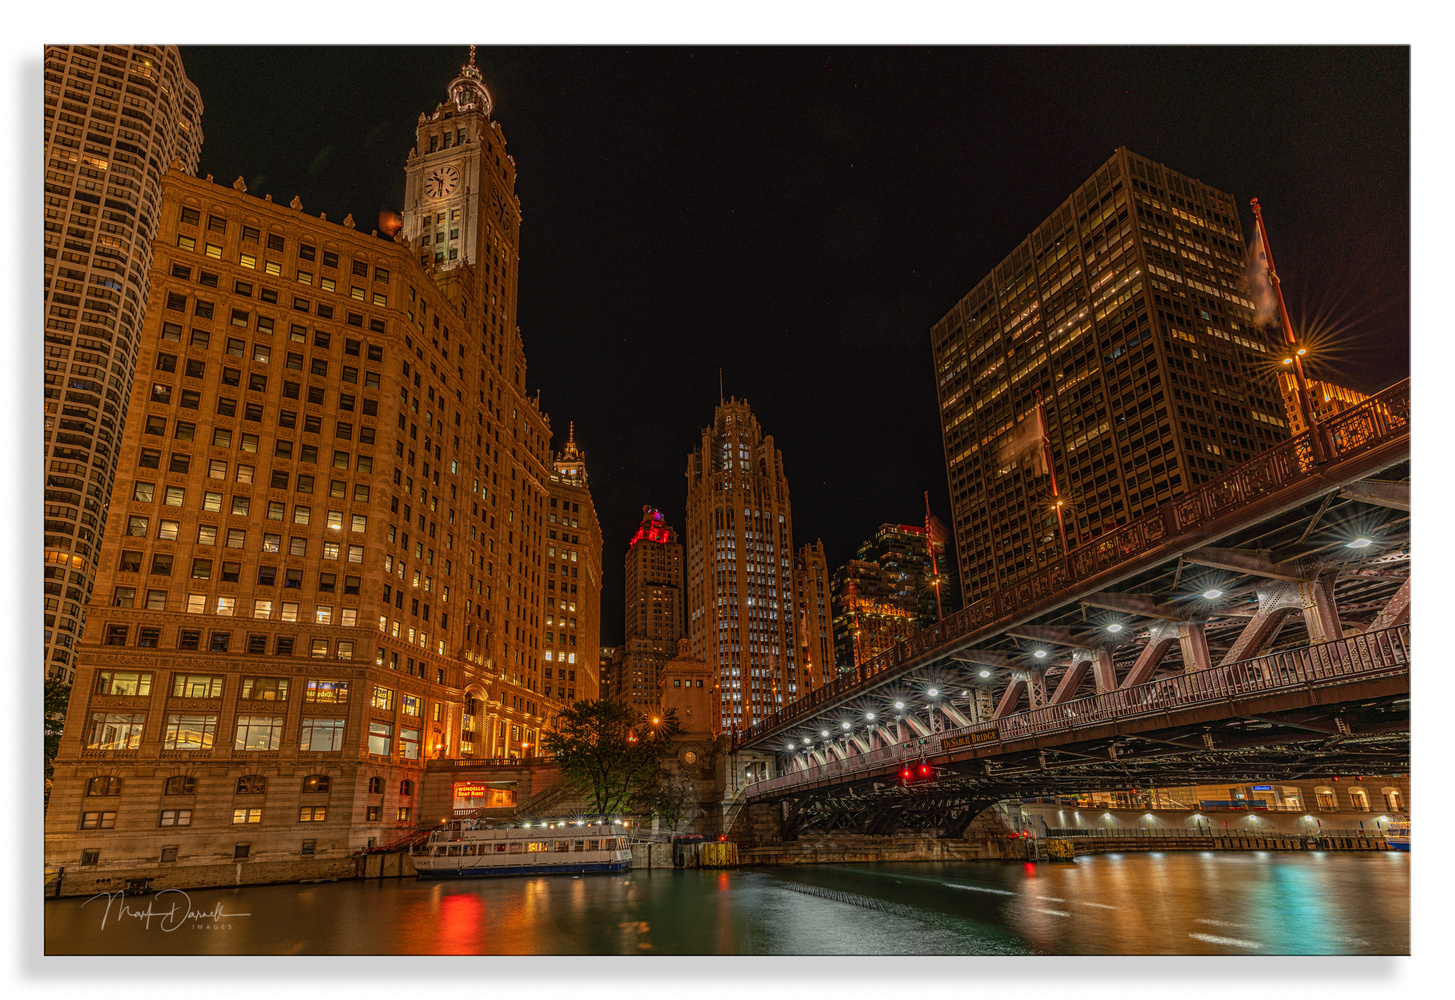 Night View At DuSable Bridge by Mark Darnell